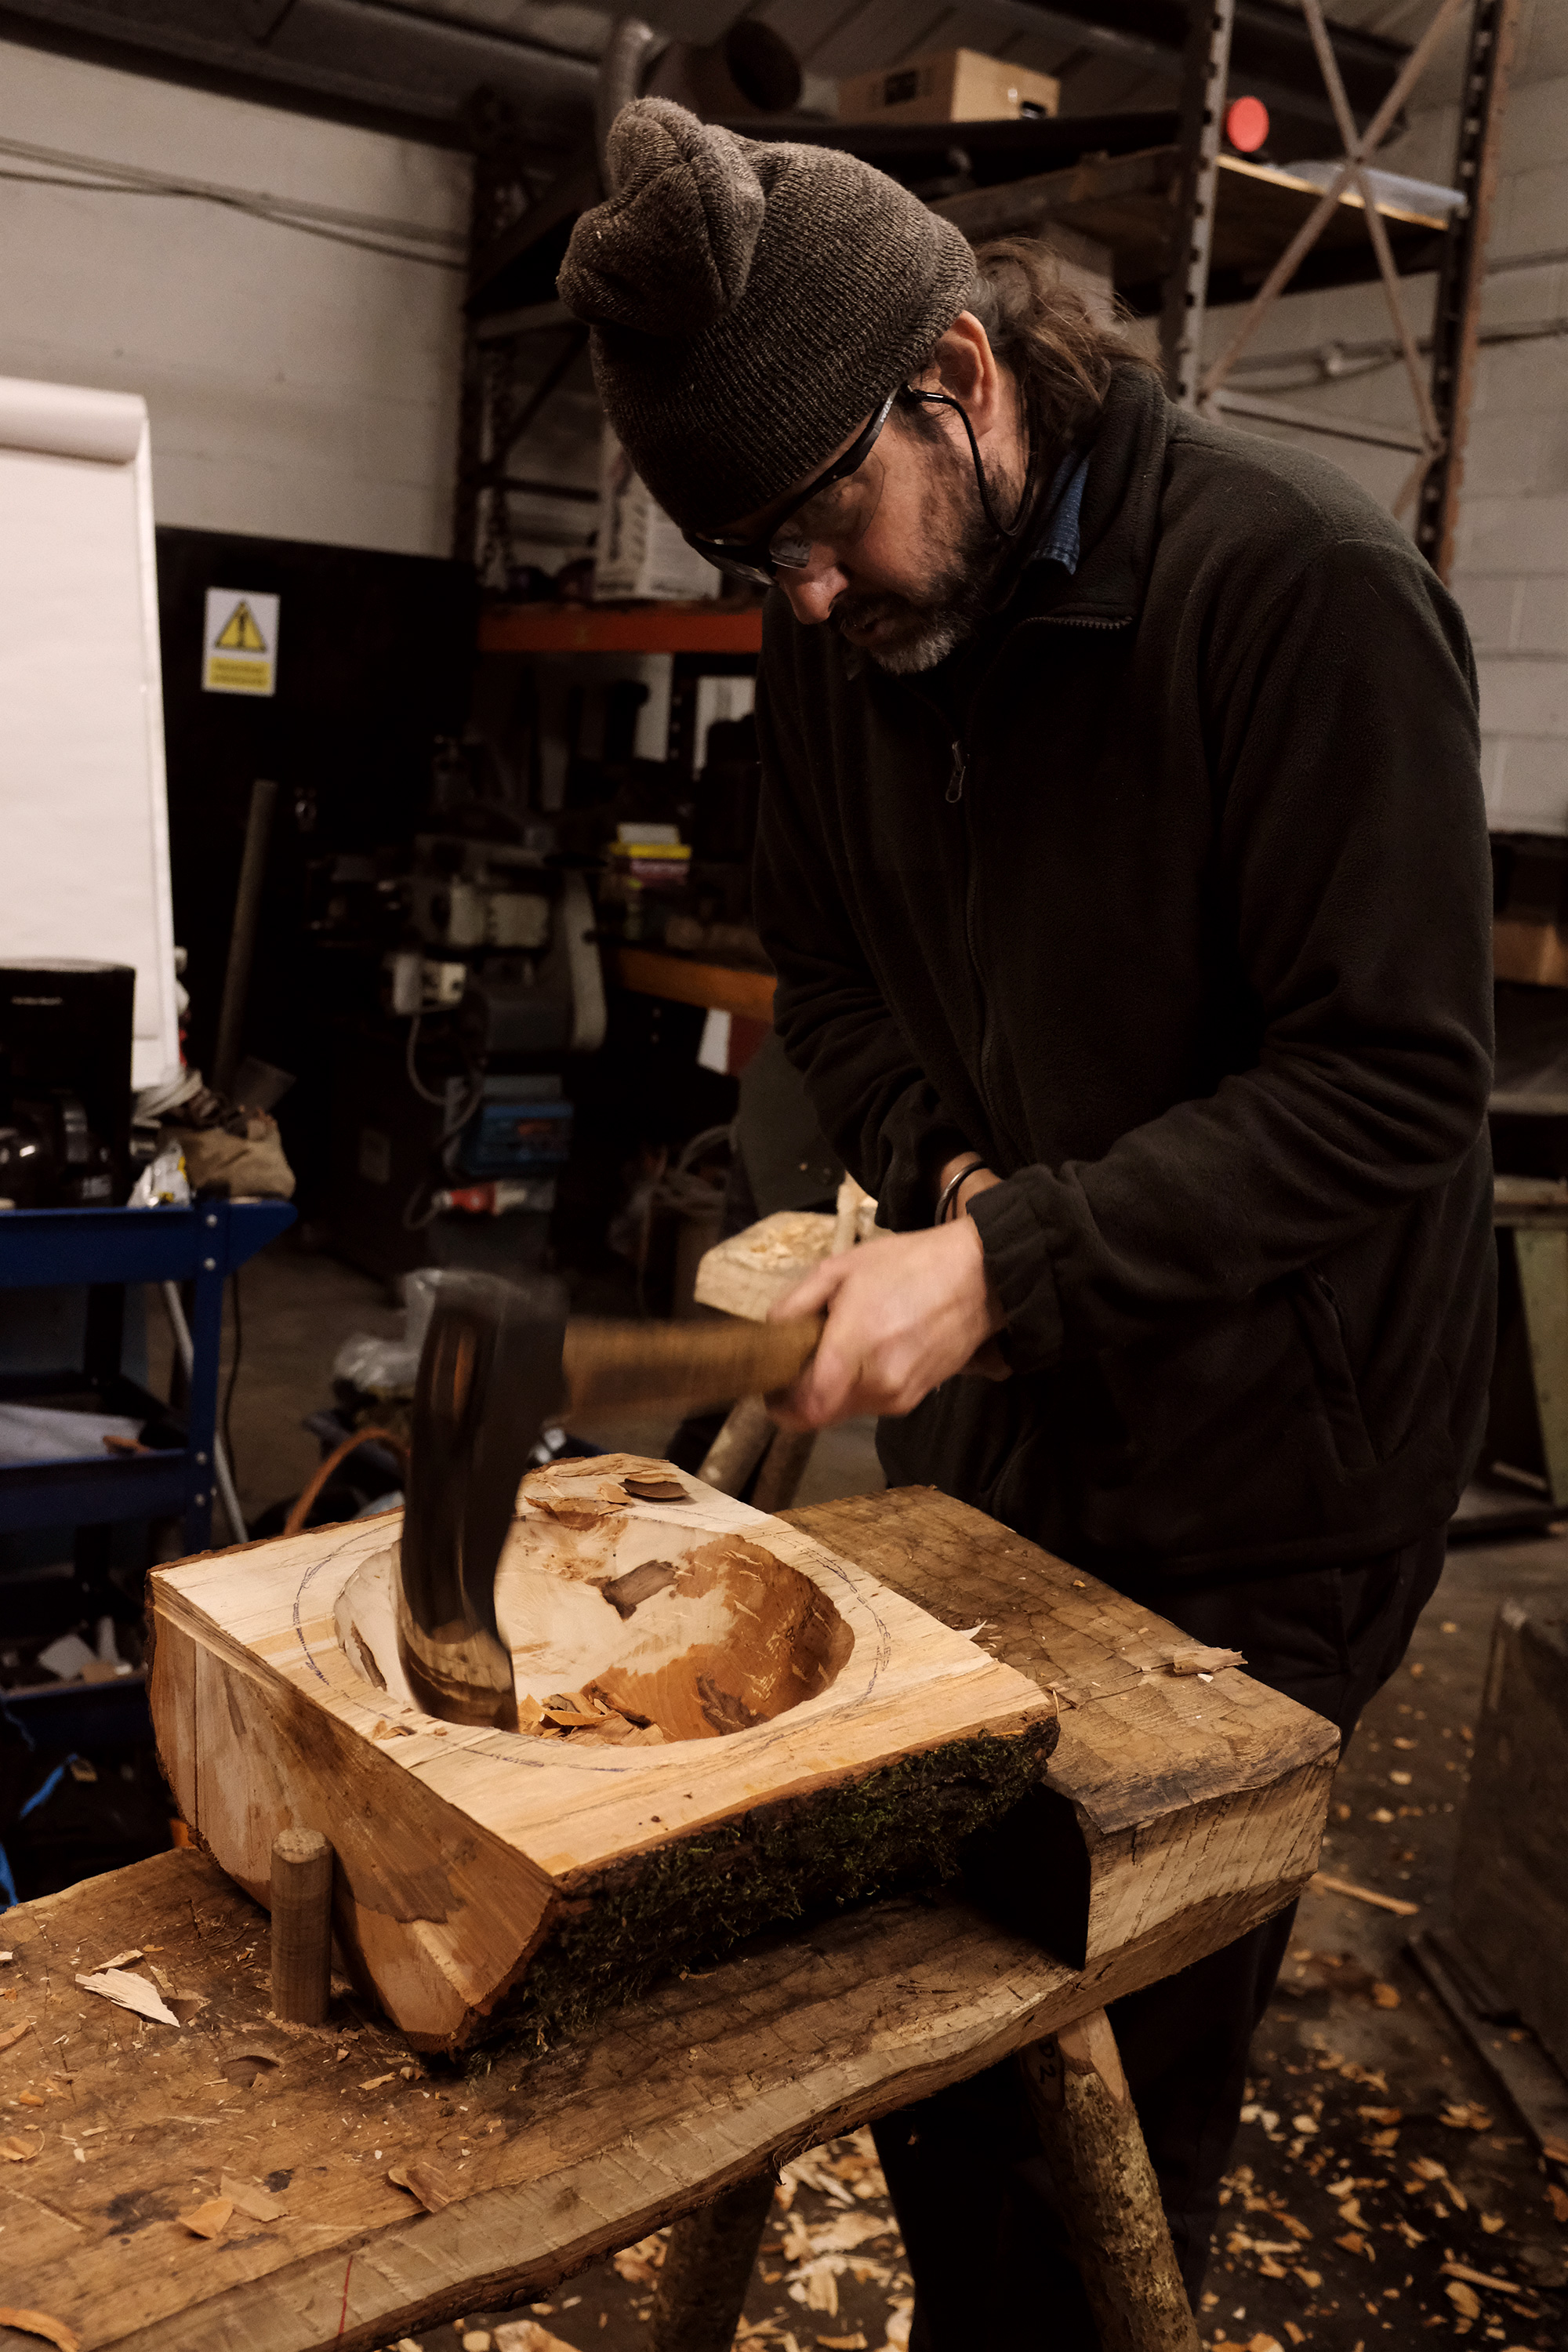 Nic had to make adze handles, hang them, and also catch up on some sharpening hook orders. So we took turns on this big bowl.